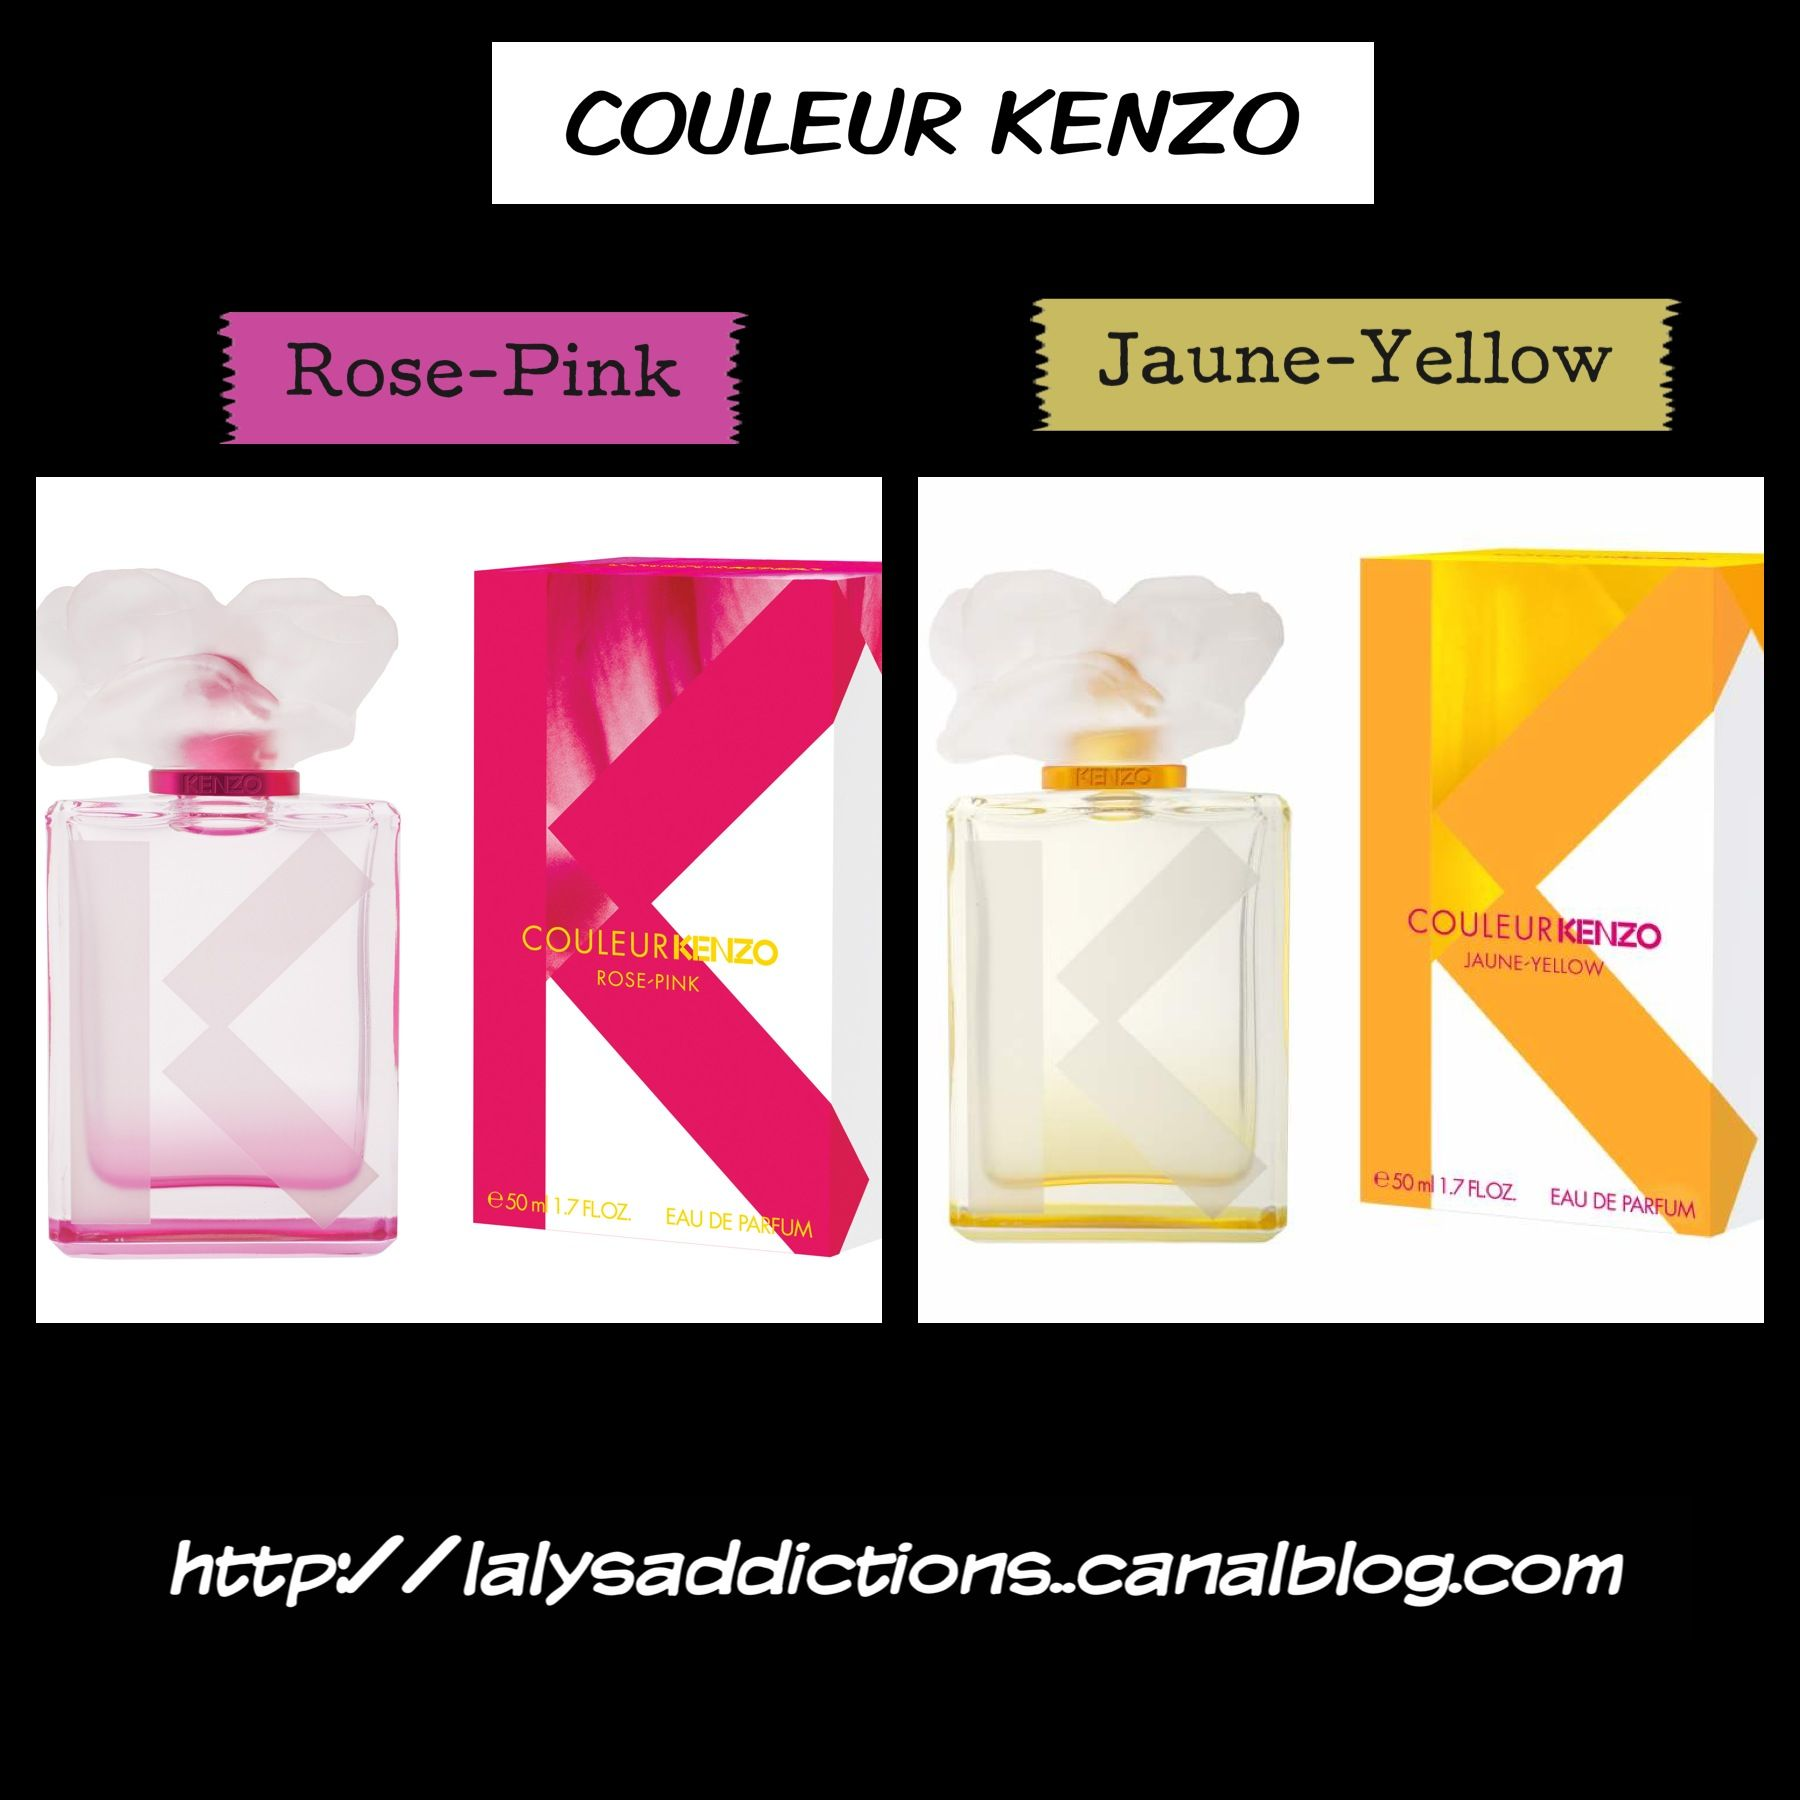 02f2c746 Couleur Kenzo Rose/Pink – Prix : 59€ – Contenance : 50 ml